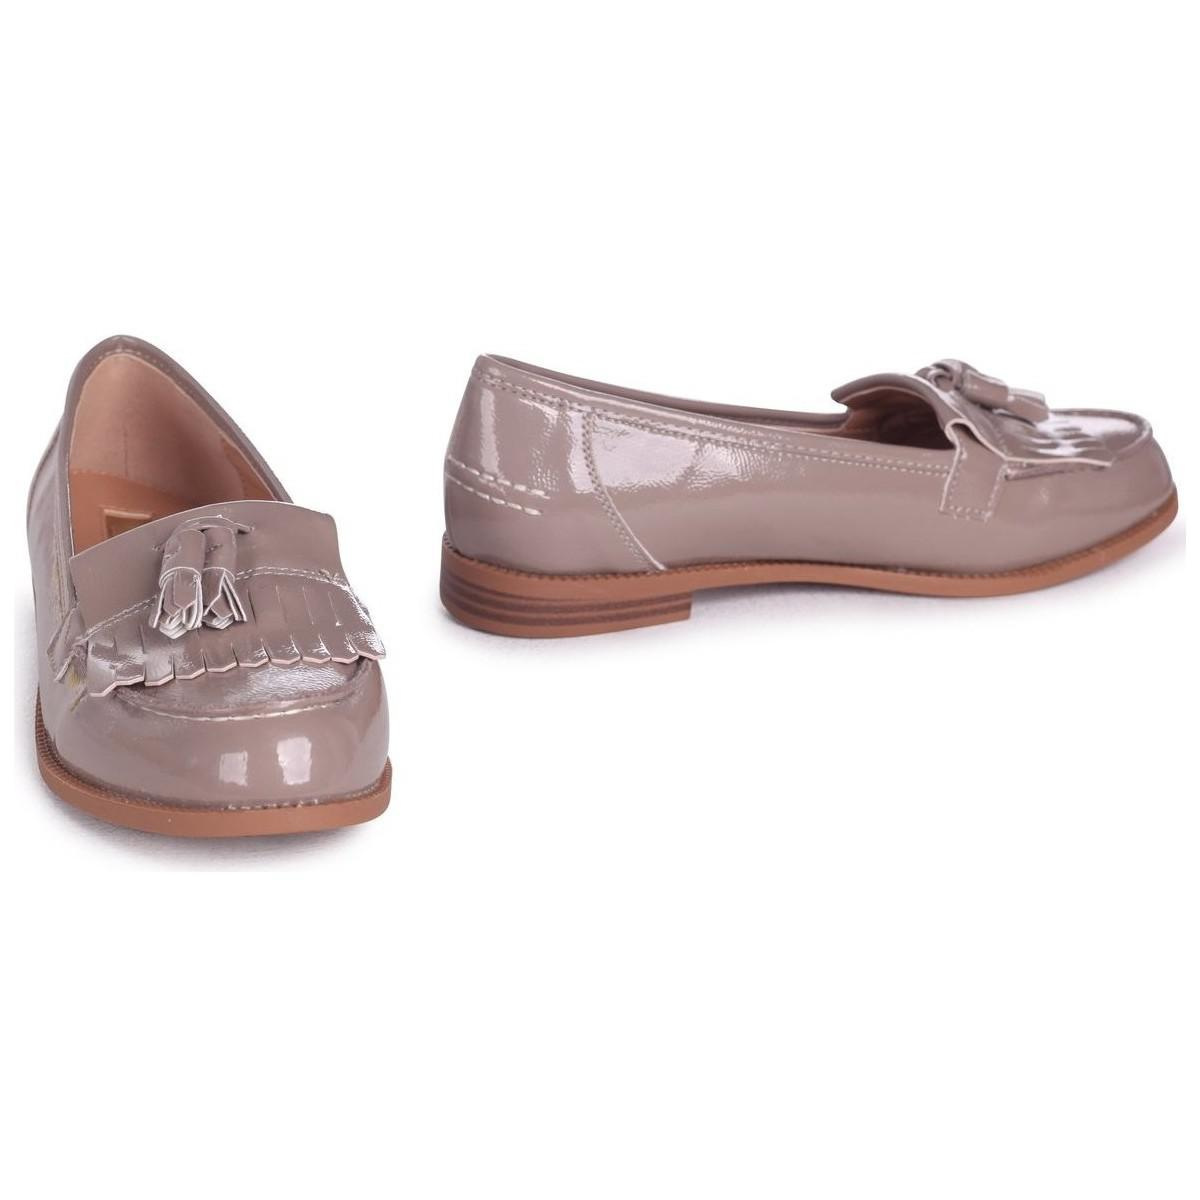 b0076b37555 Linzi Rosemary Women s Loafers   Casual Shoes In Other - Lyst